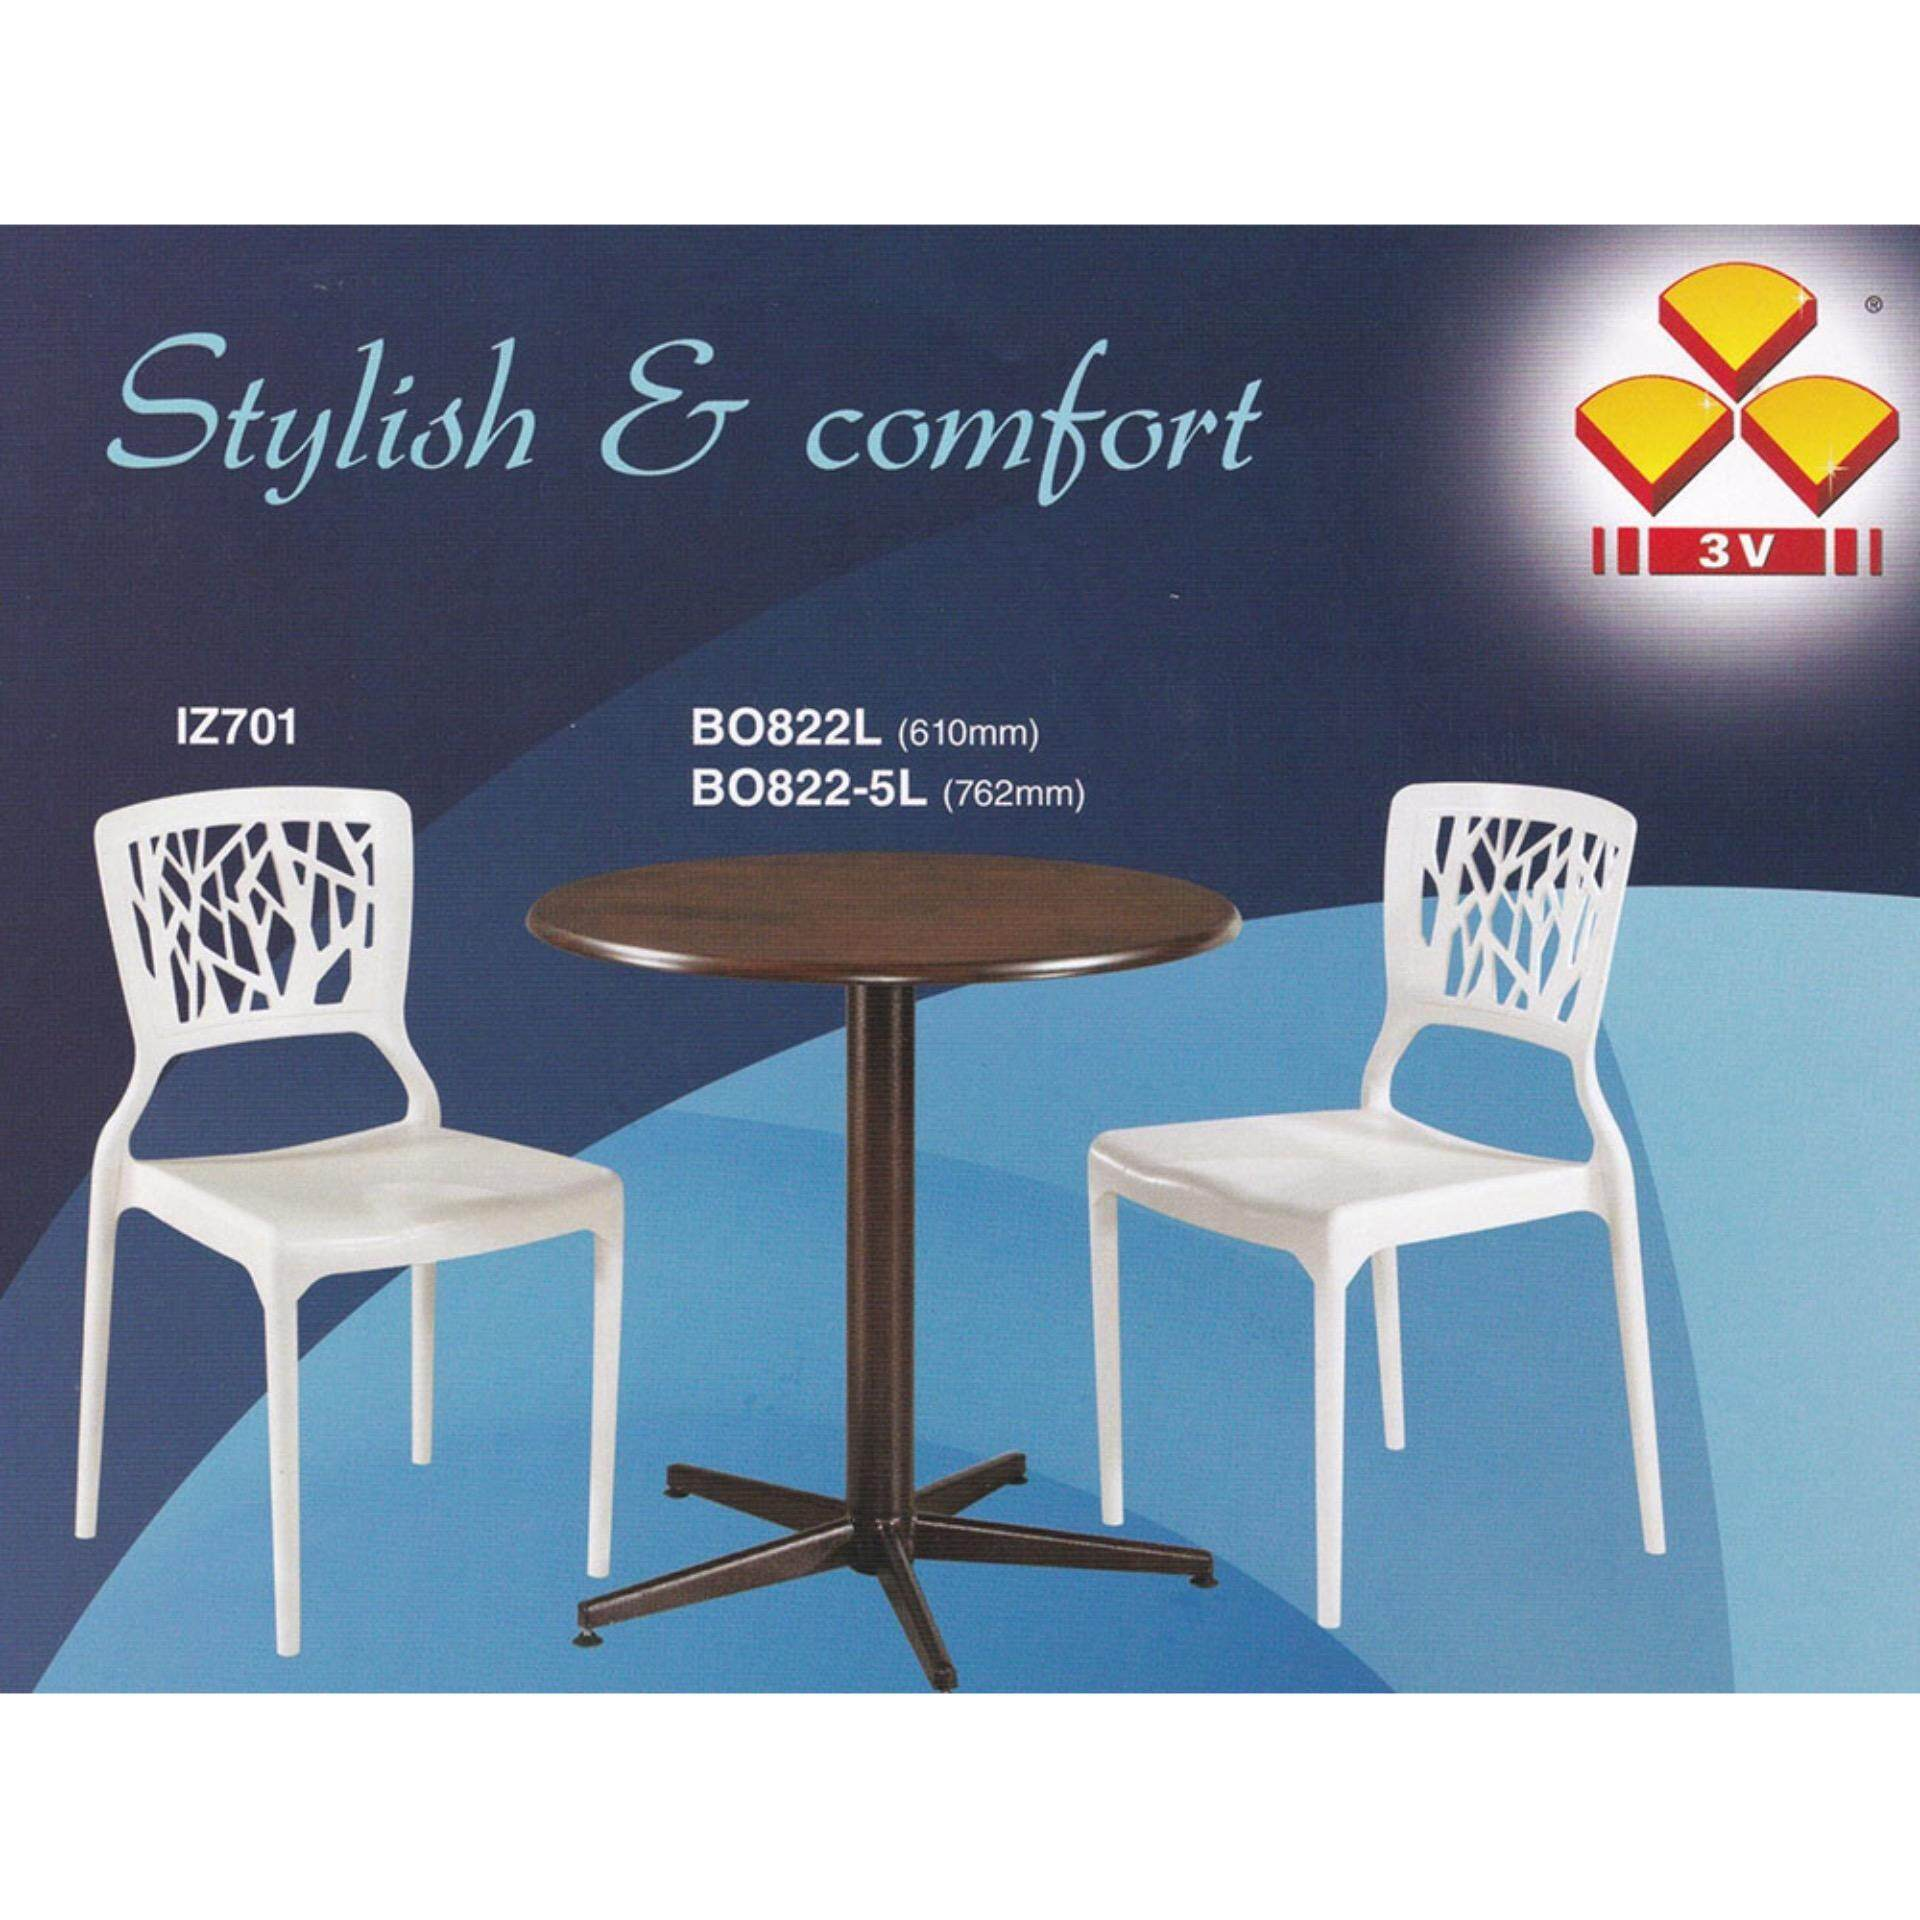 3V Solid Strong Pantry Designer Plastic Chair x 2 Units (White) L430MMx W450MMx H835MM